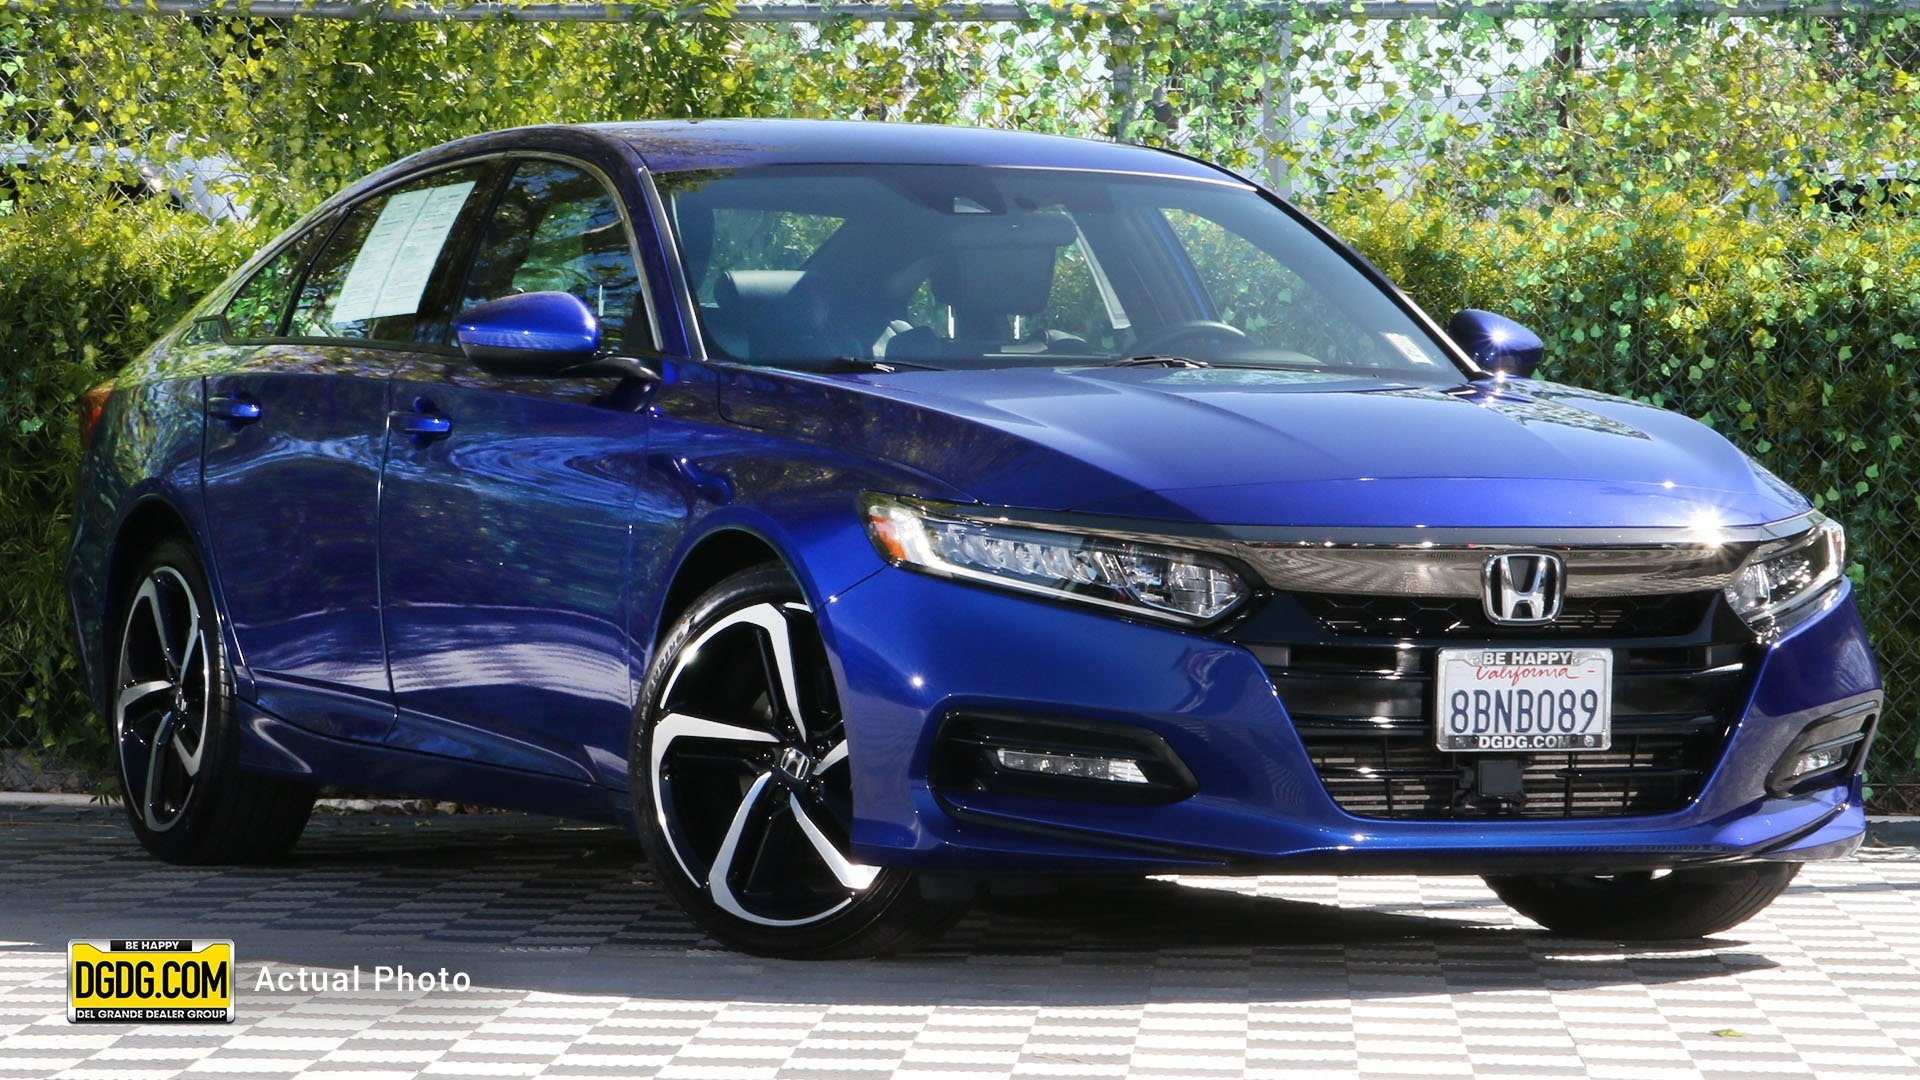 Pre Owned 2018 Honda Accord Sport 4d Sedan In San Jose Uk3706